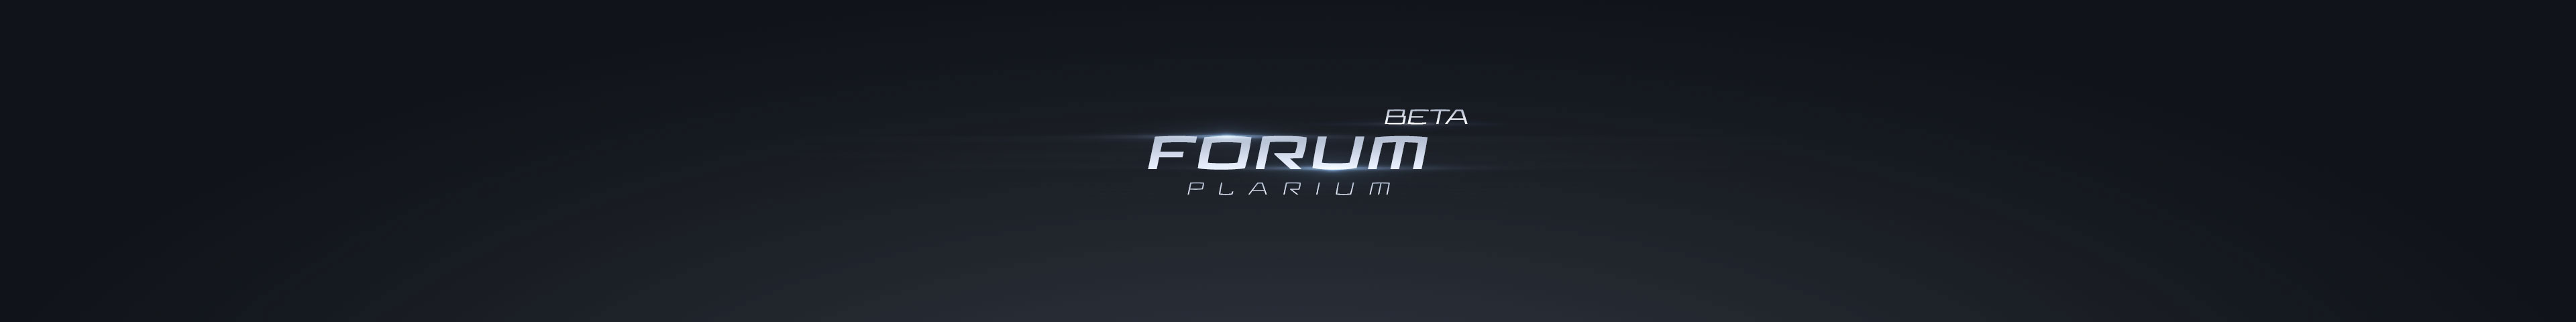 Plarium Forums